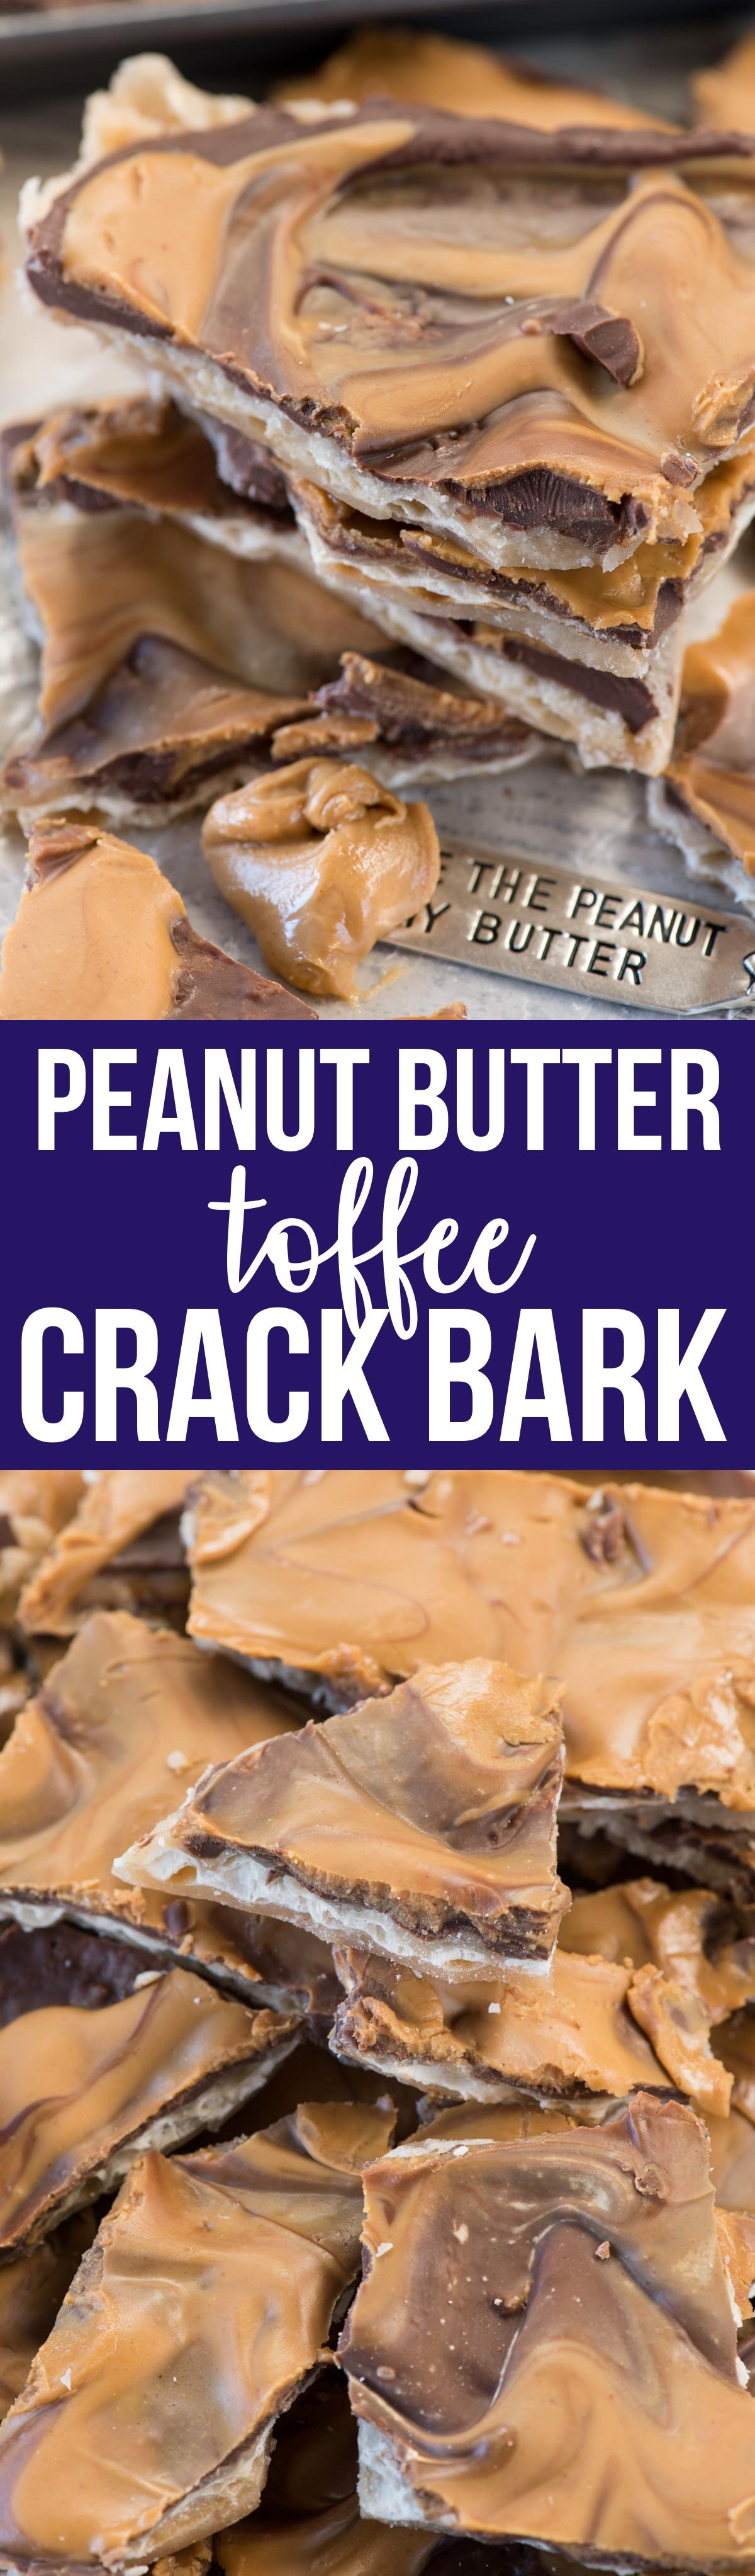 Peanut Butter Toffee Bark - this is the perfect crack bark recipe! Homemade toffee is baked on matzo crackers and topped with lots of chocolate and peanut butter. It's pure heaven and EVERYONE raves about it.